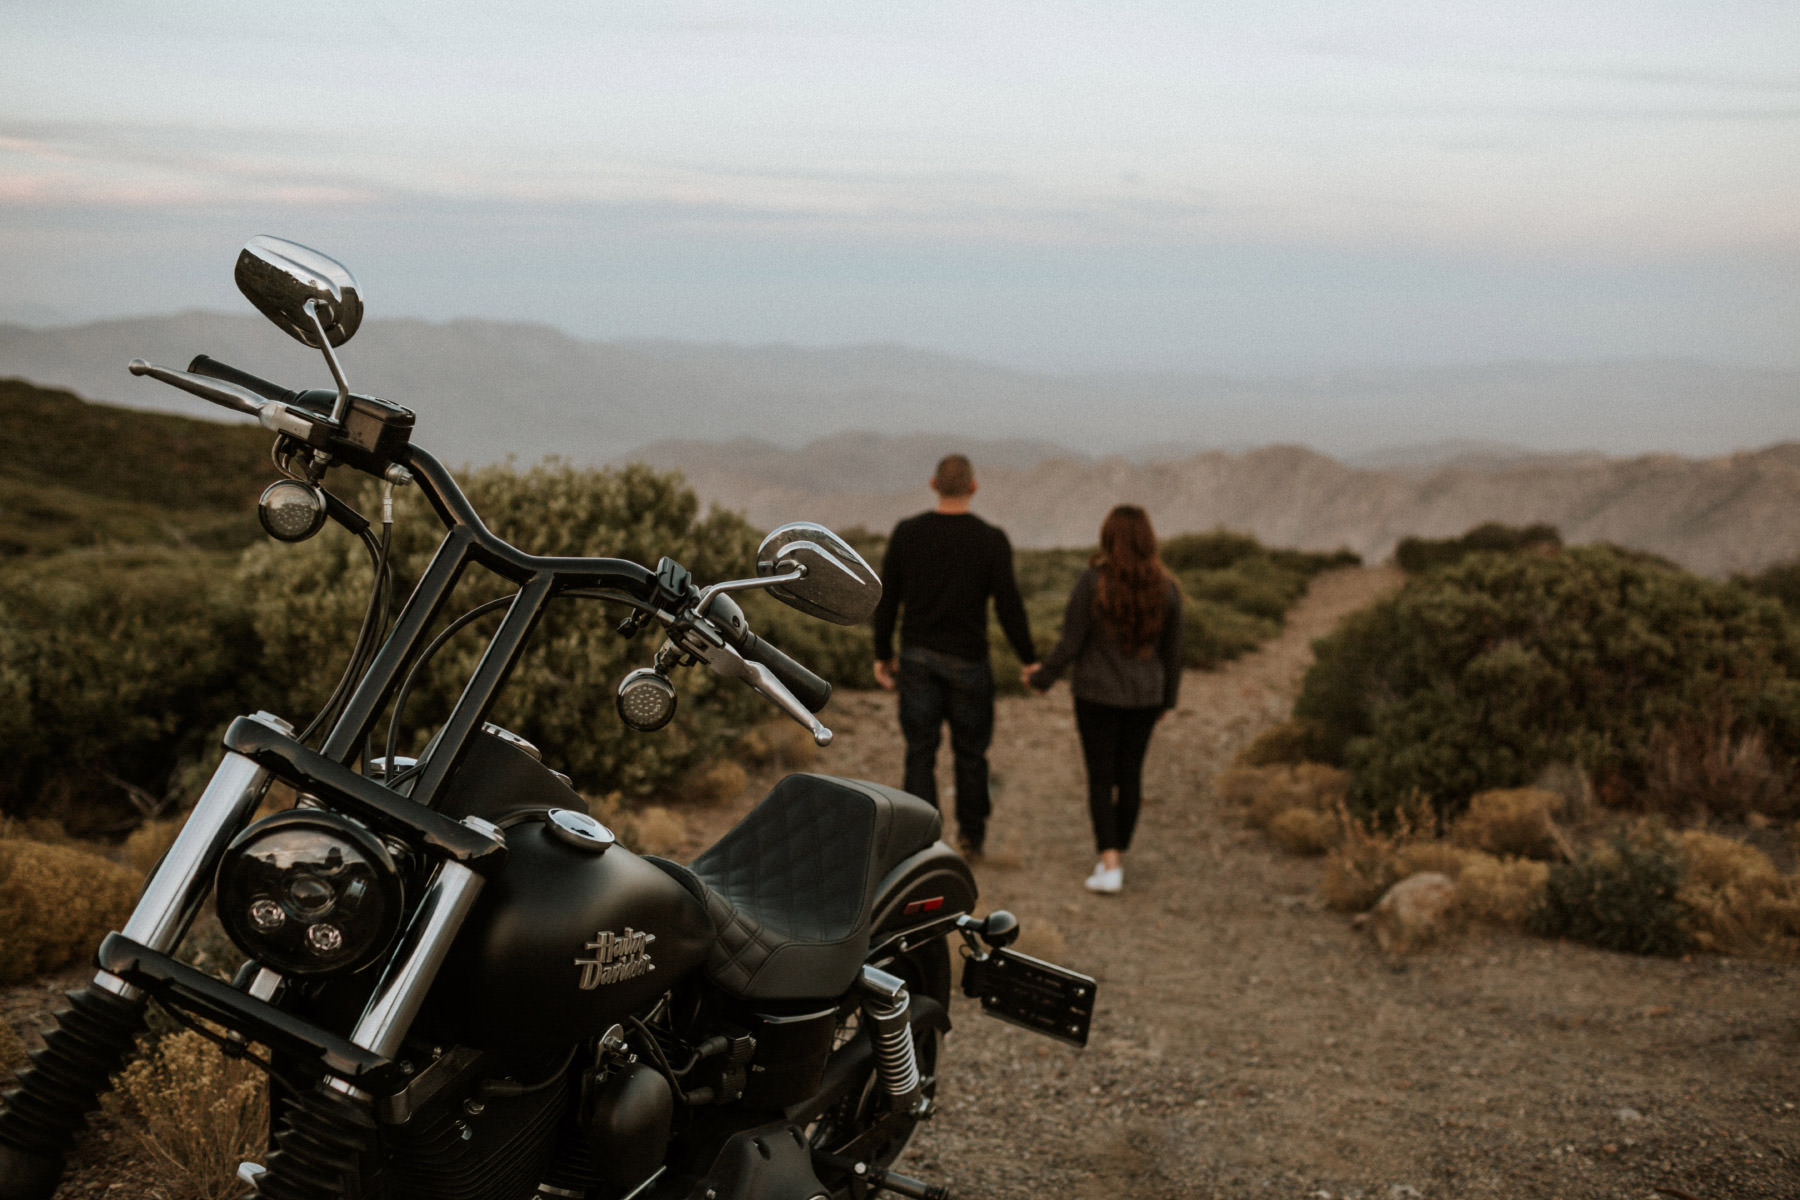 Harley Davidson in the mountains